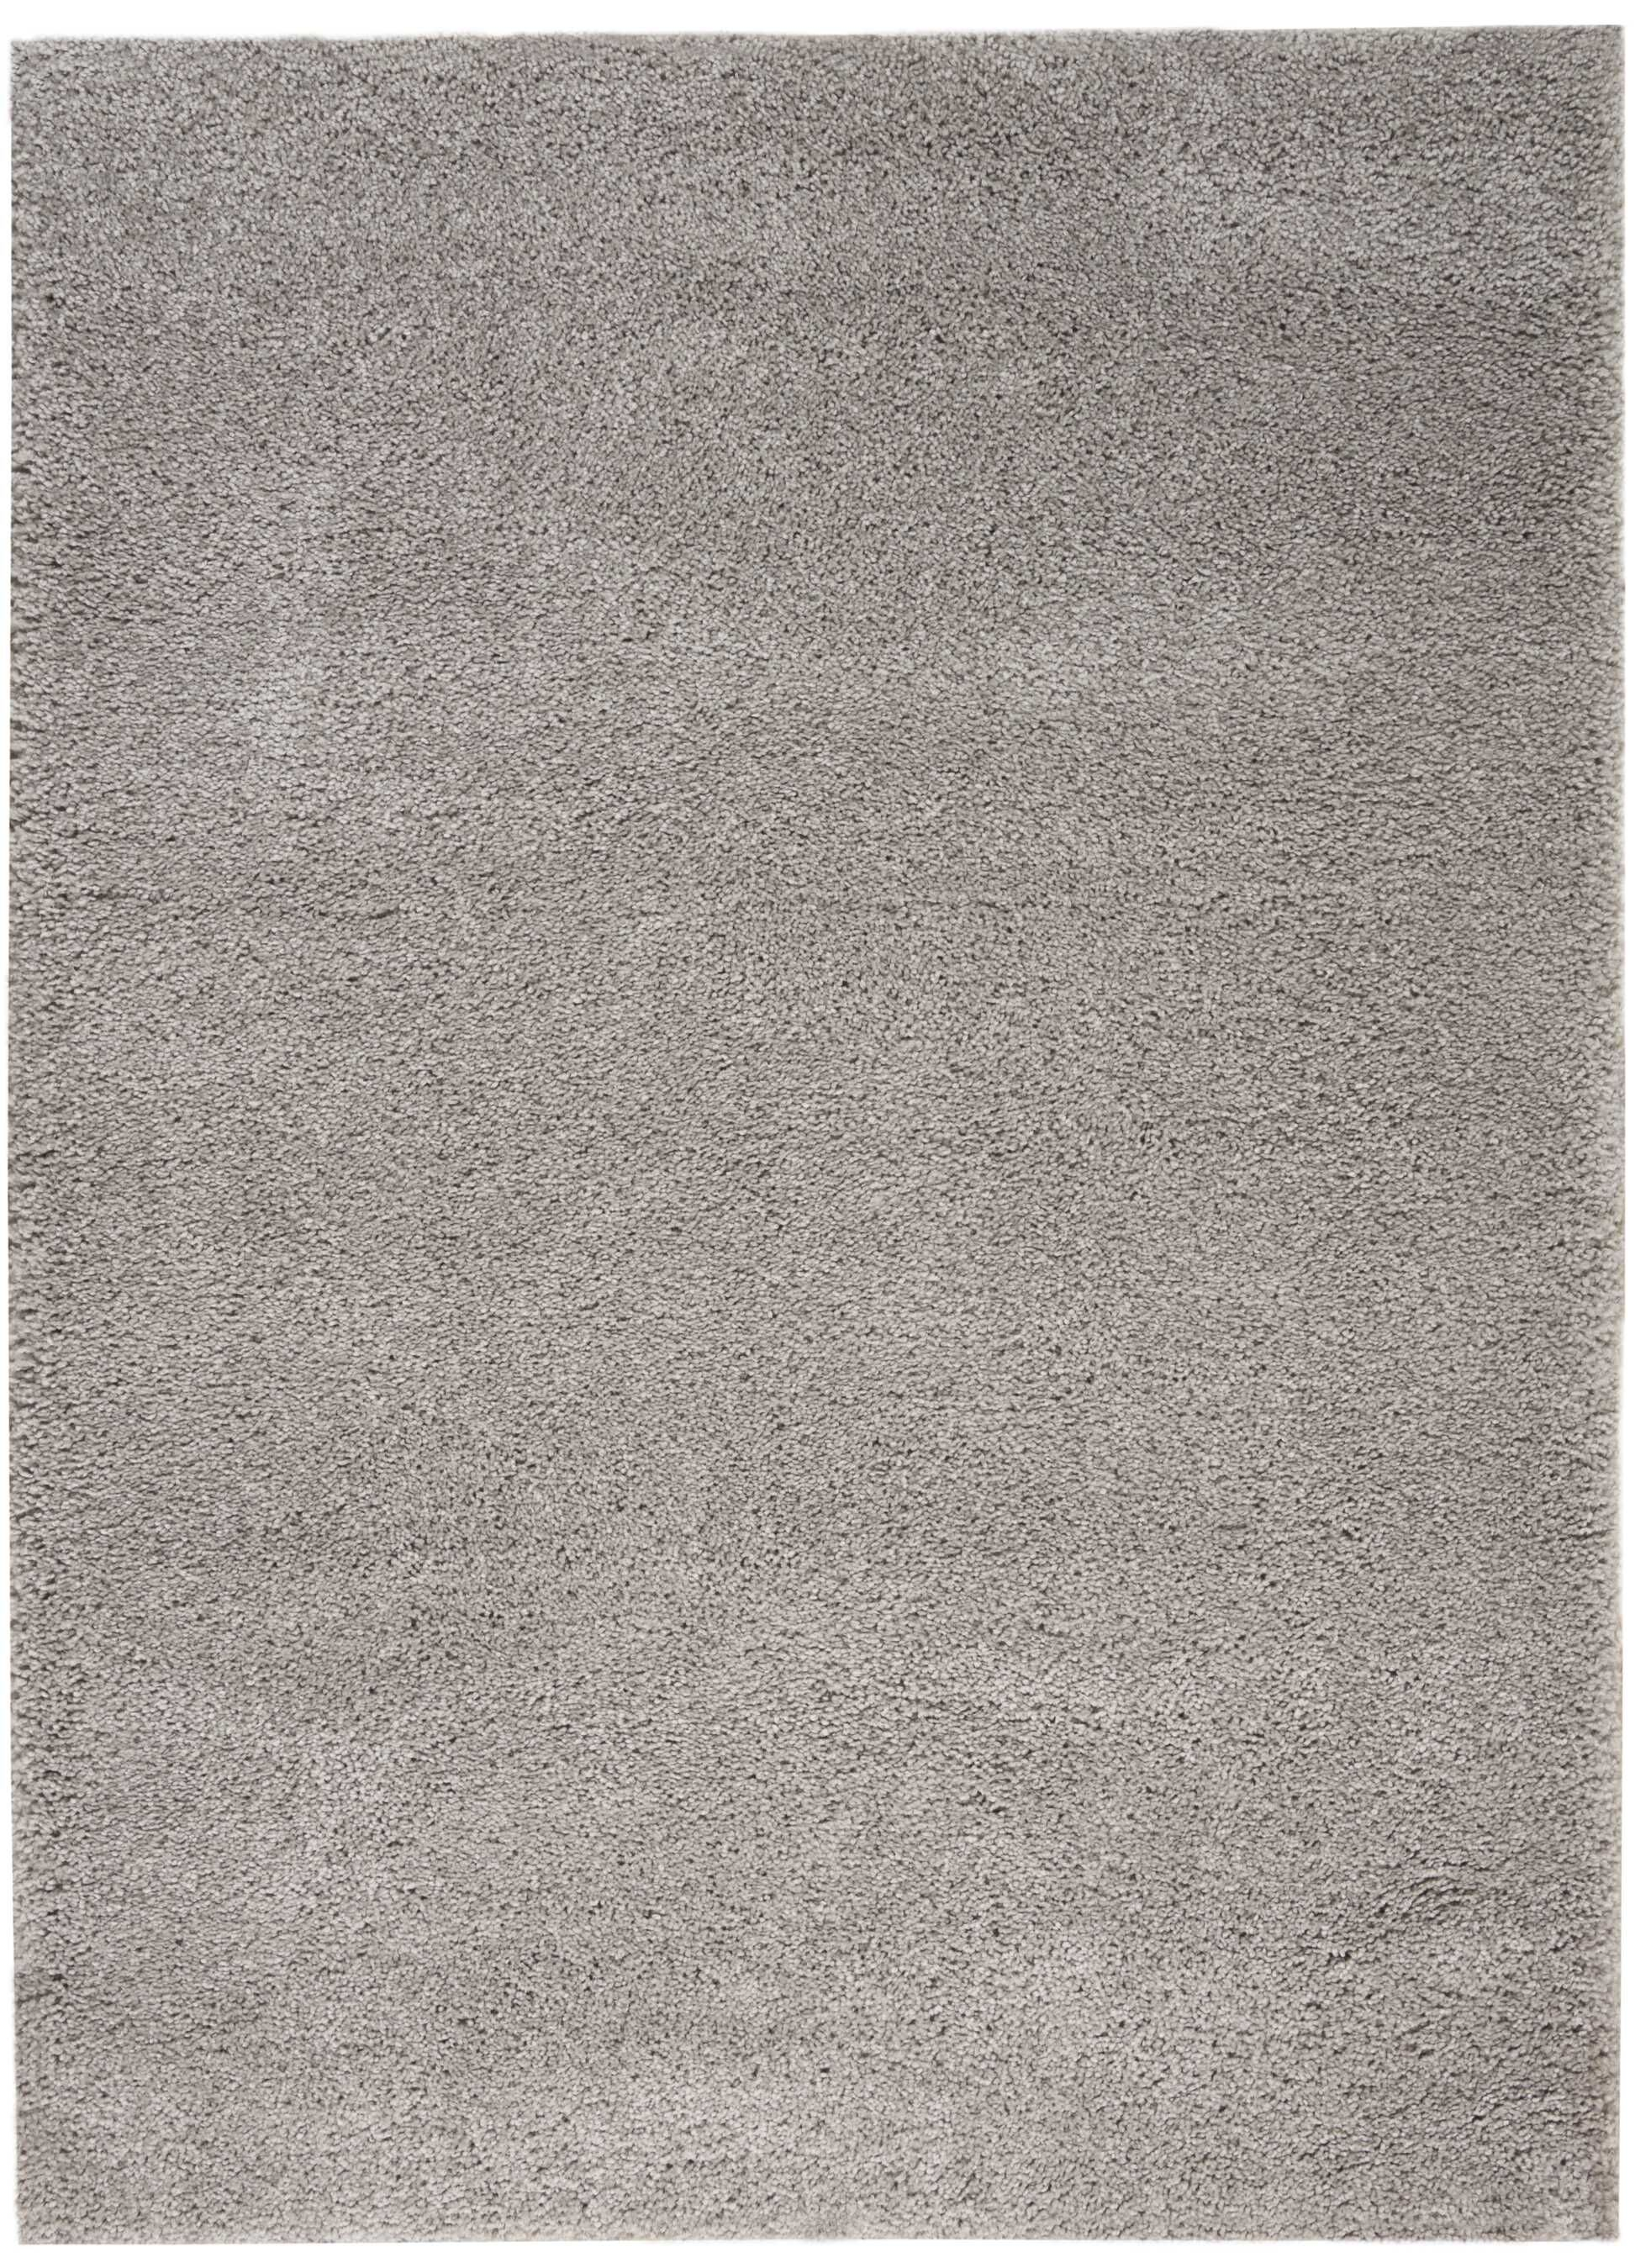 Parrish Gray Area Rug Rug Size: Rectangle 9'10